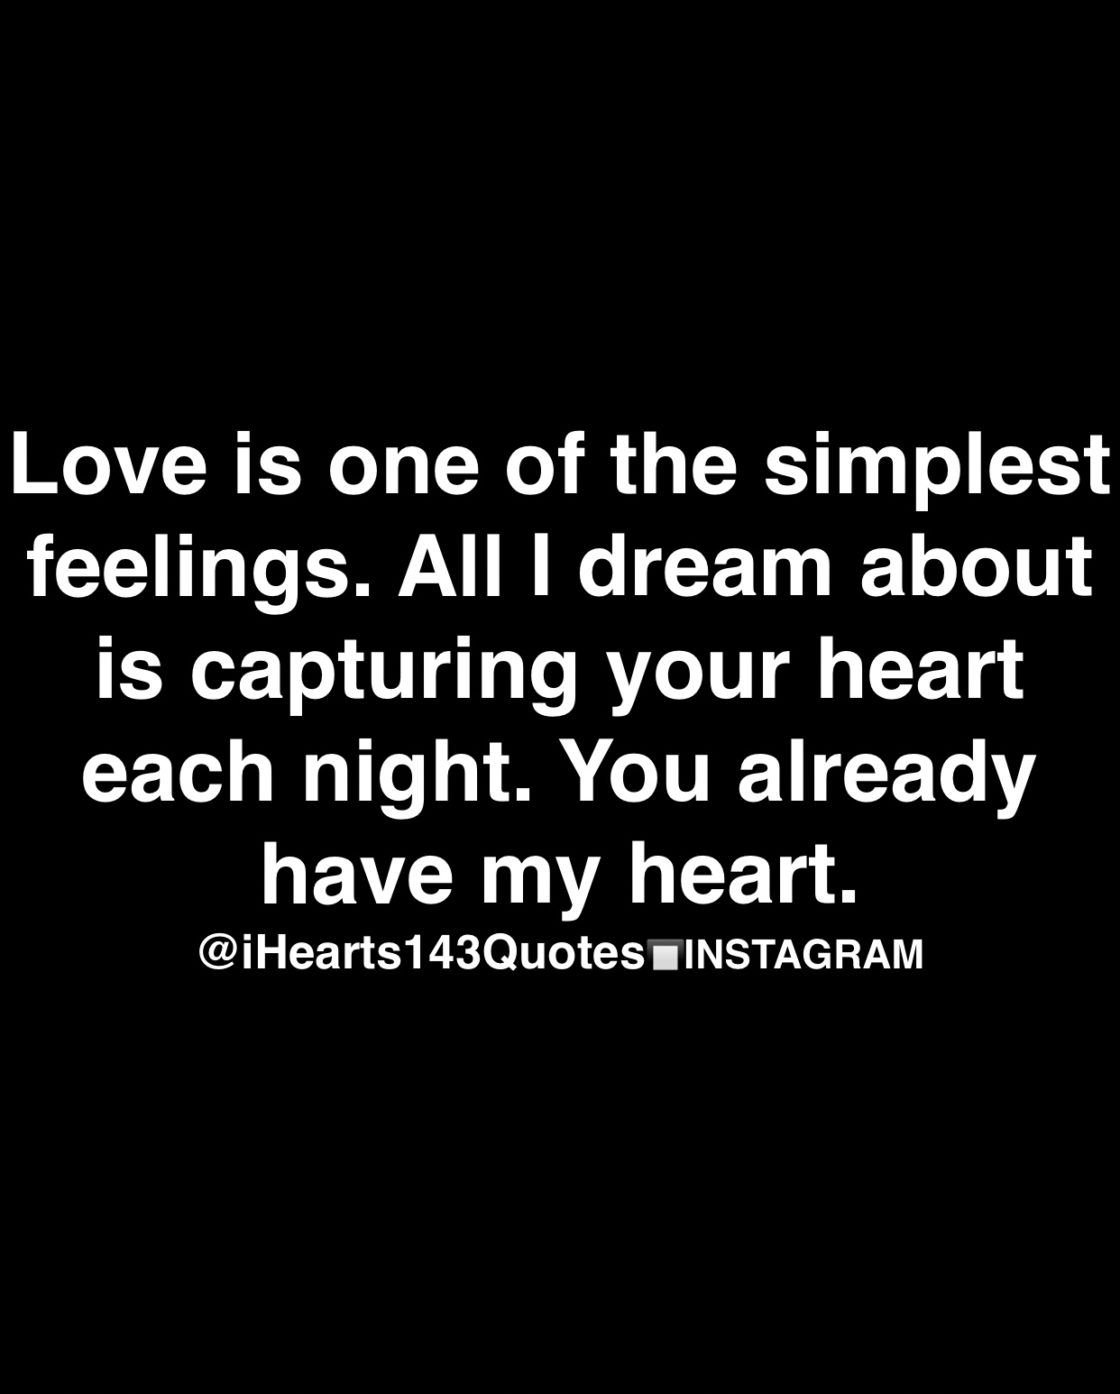 Daily Motivational Quote Daily Motivational Quotes  Ihearts143Quotes